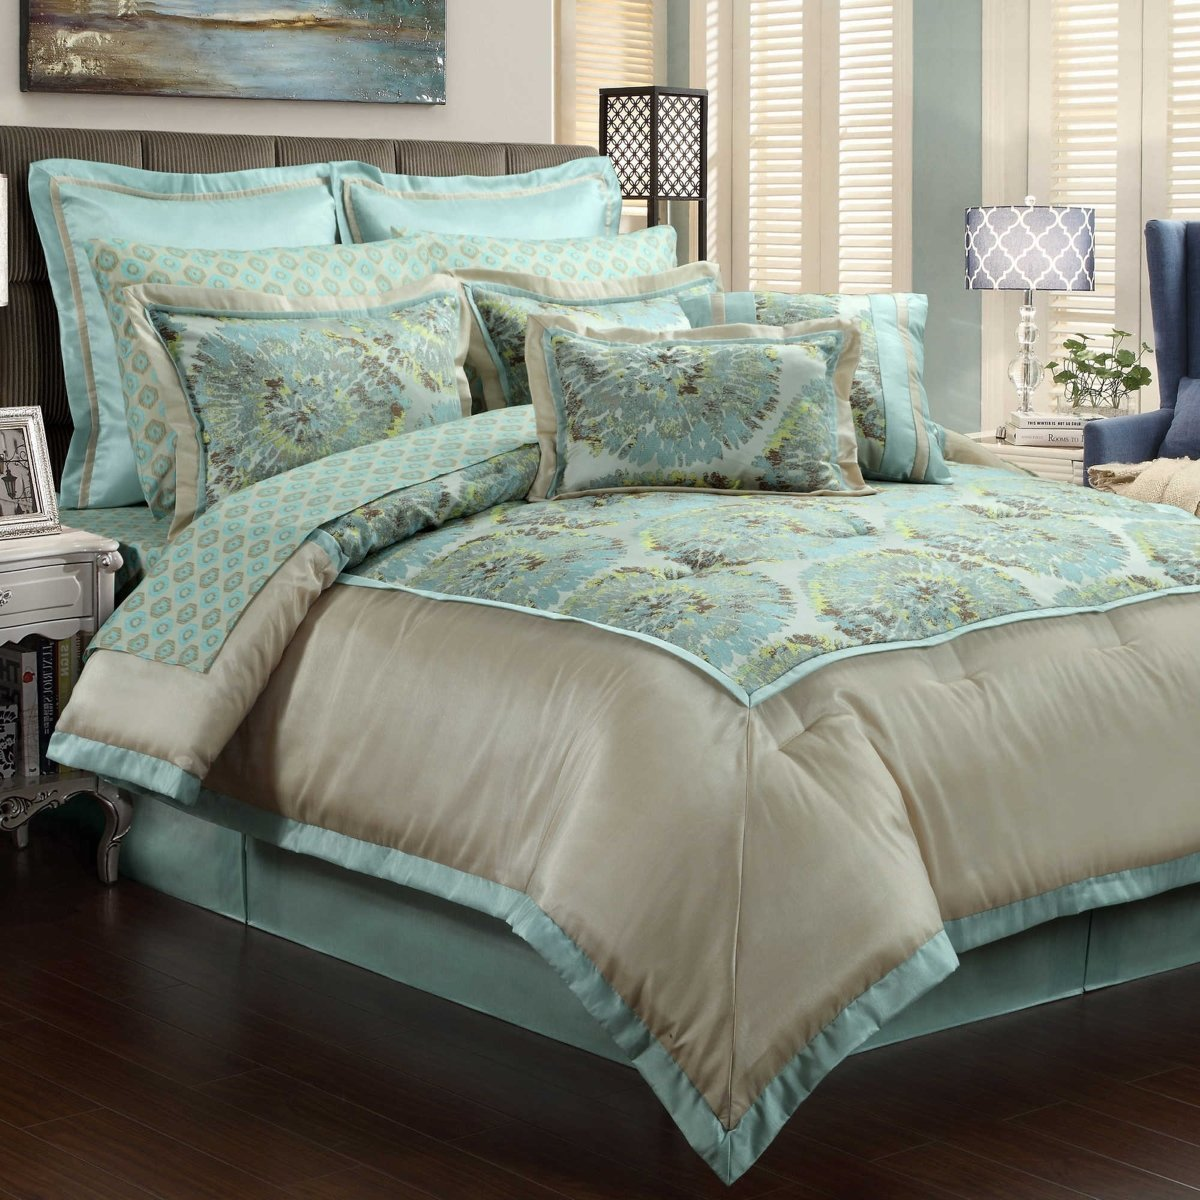 Queen bedding sets freedom of life like a queen home furniture design Queen size bed and mattress set